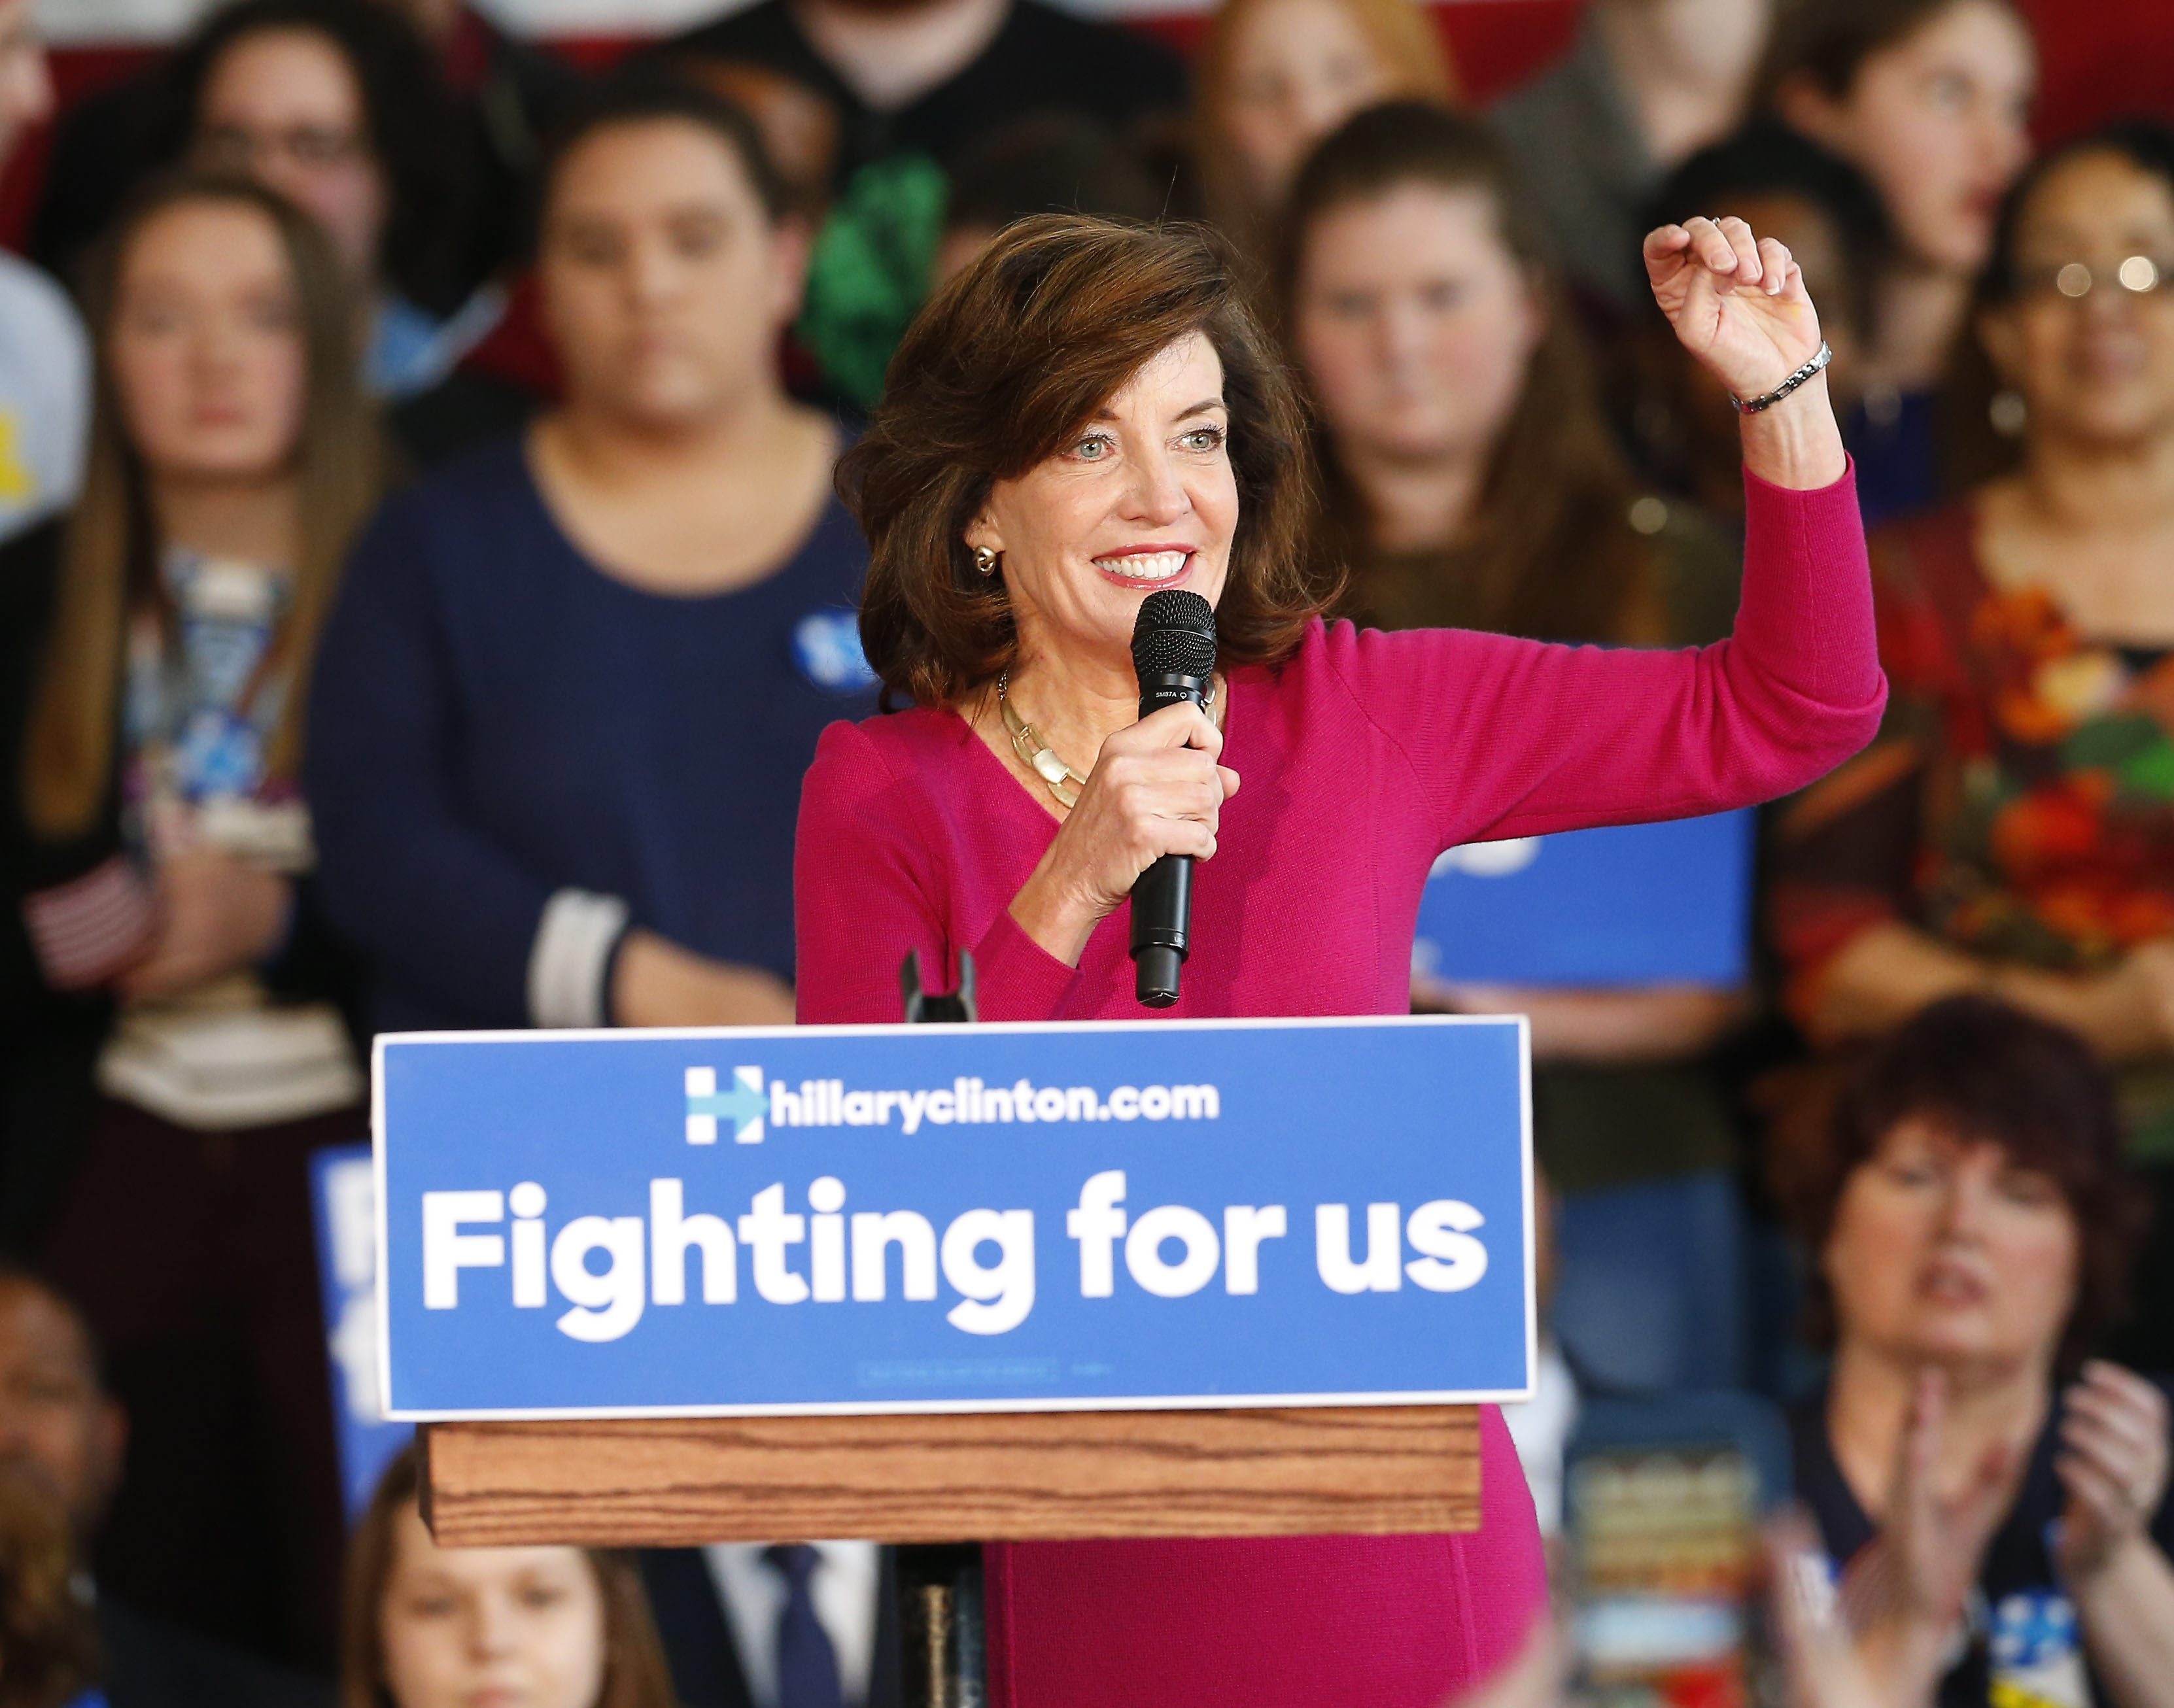 Lieutenant Governor Kathy Hochul speaks to Hillary Clinton supporters at a campaign rally at the Pierce Arrow Museum in Buffalo on April 8. (Mark Mulville/Buffalo News)